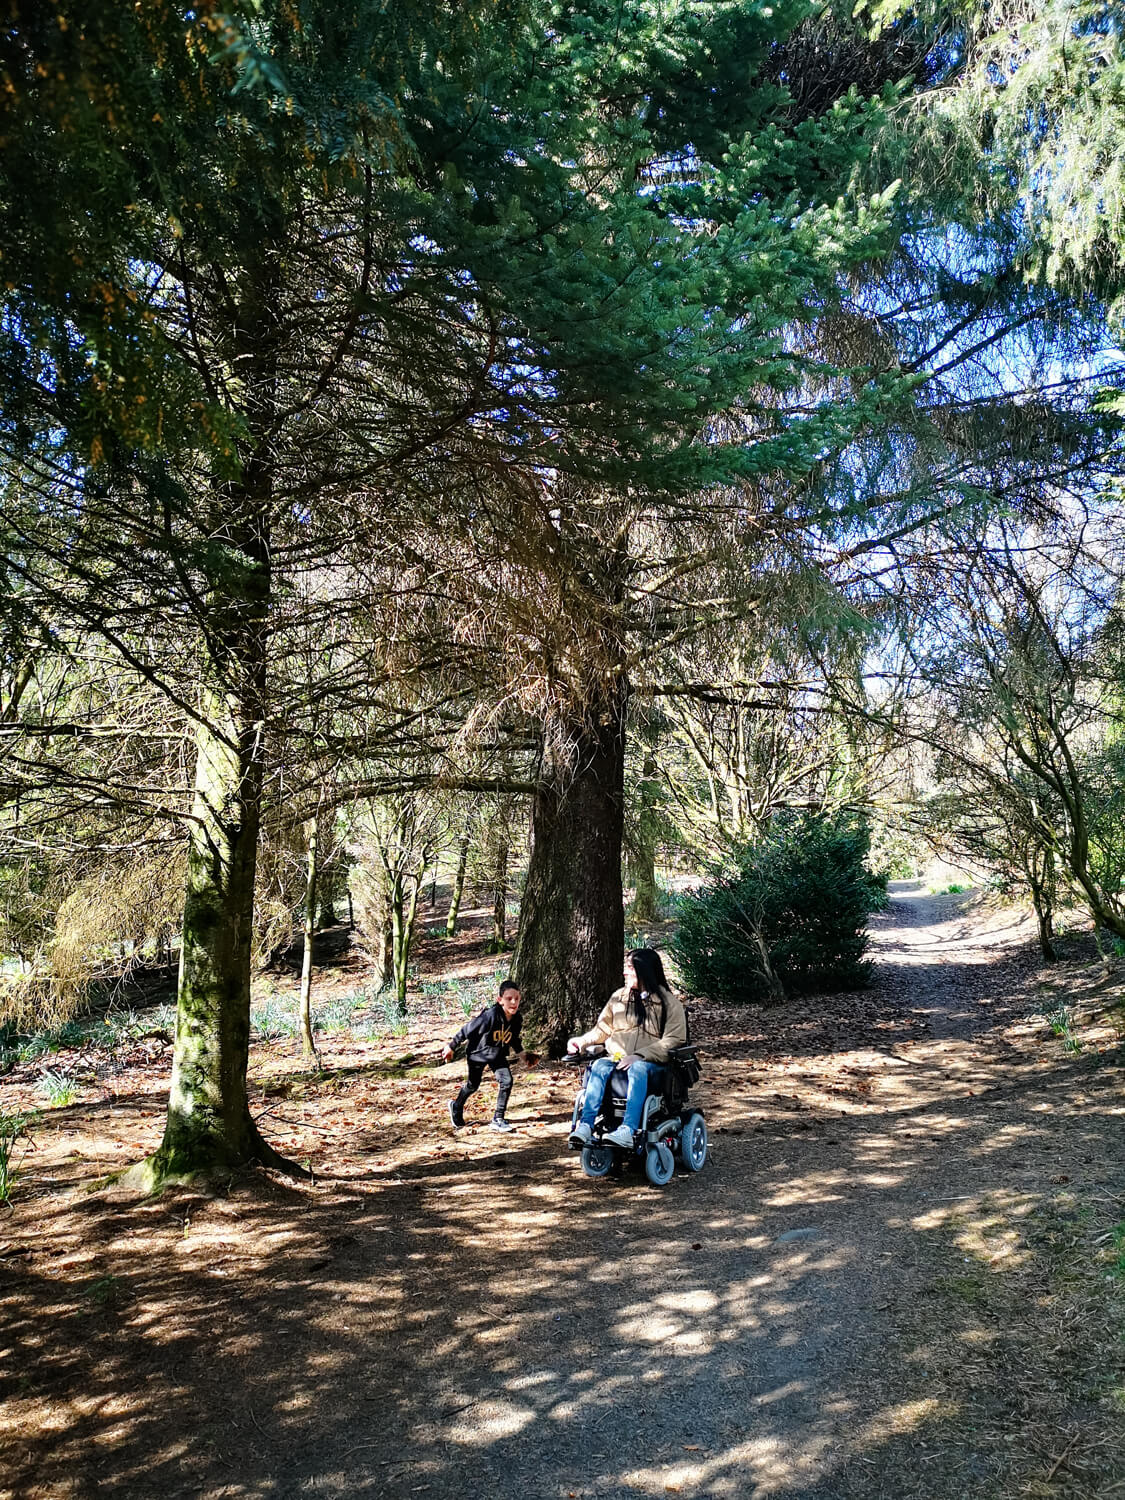 Emma driving her wheelchair through a forest nature trail with her nephew walking along beside her.